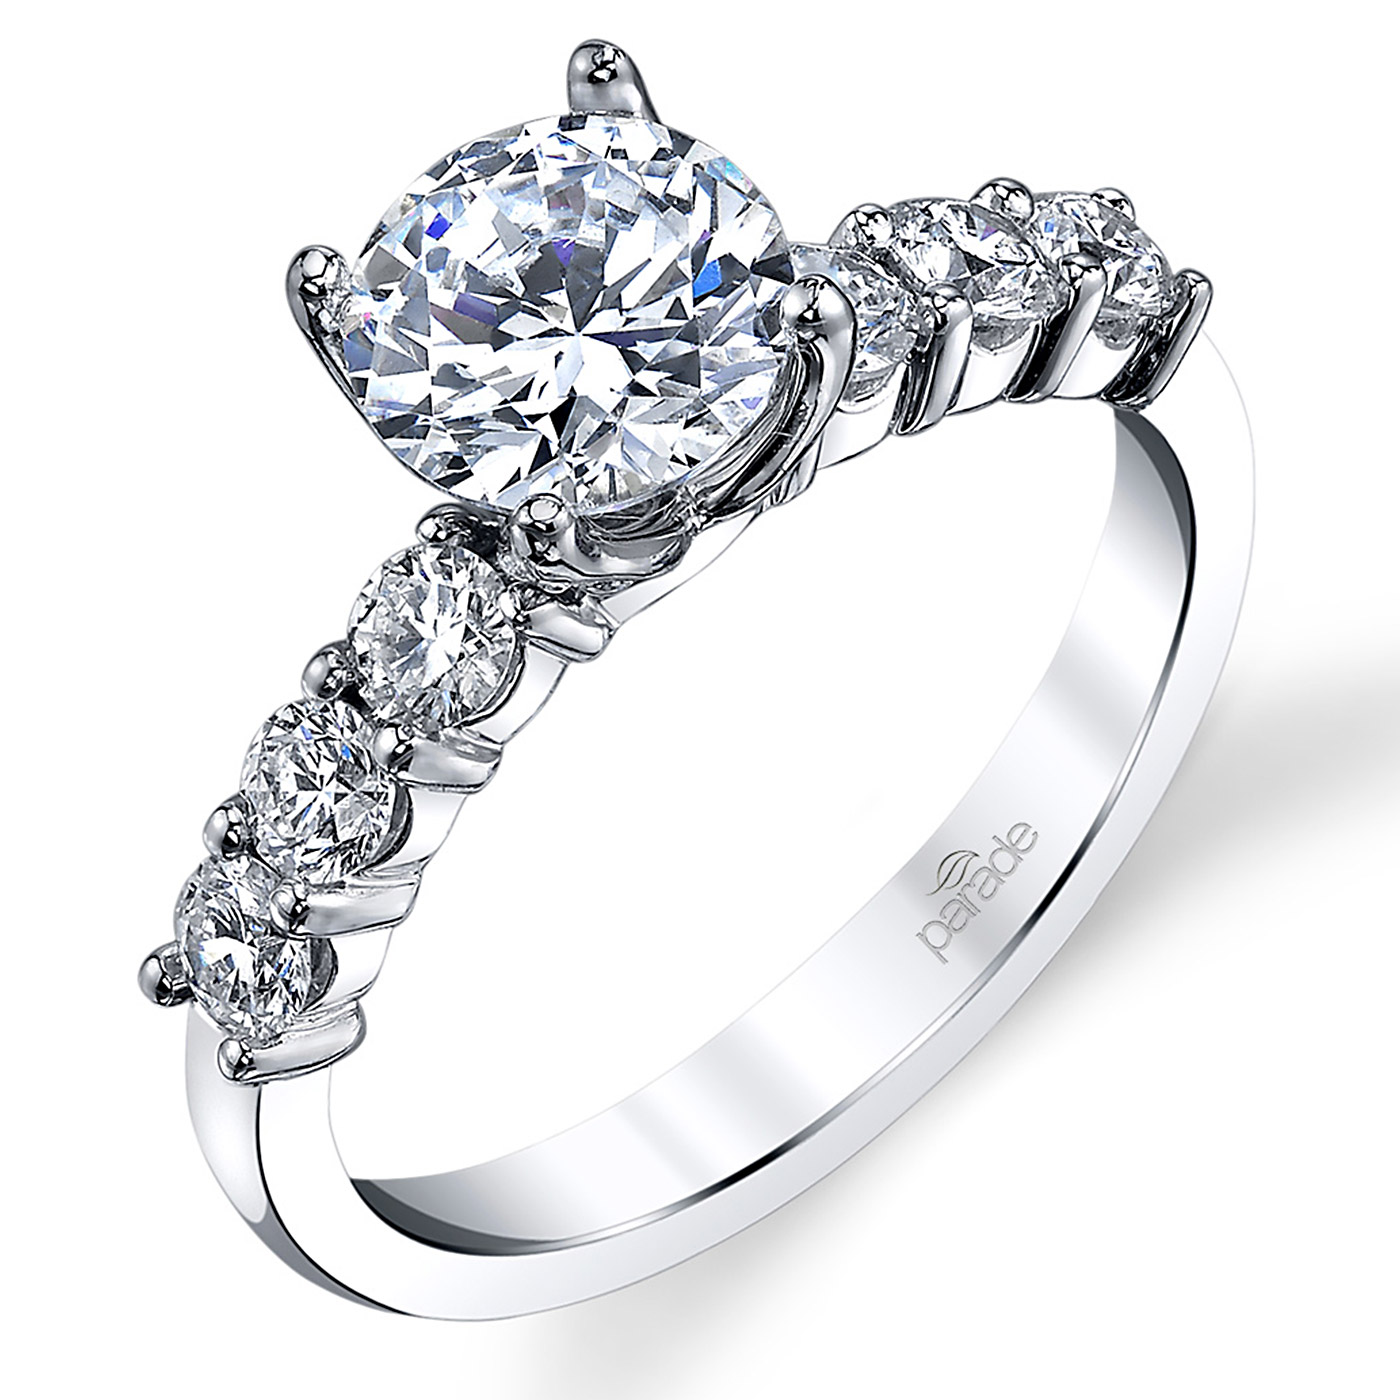 Parade New Classic 18 Karat Diamond Engagement Ring R3813